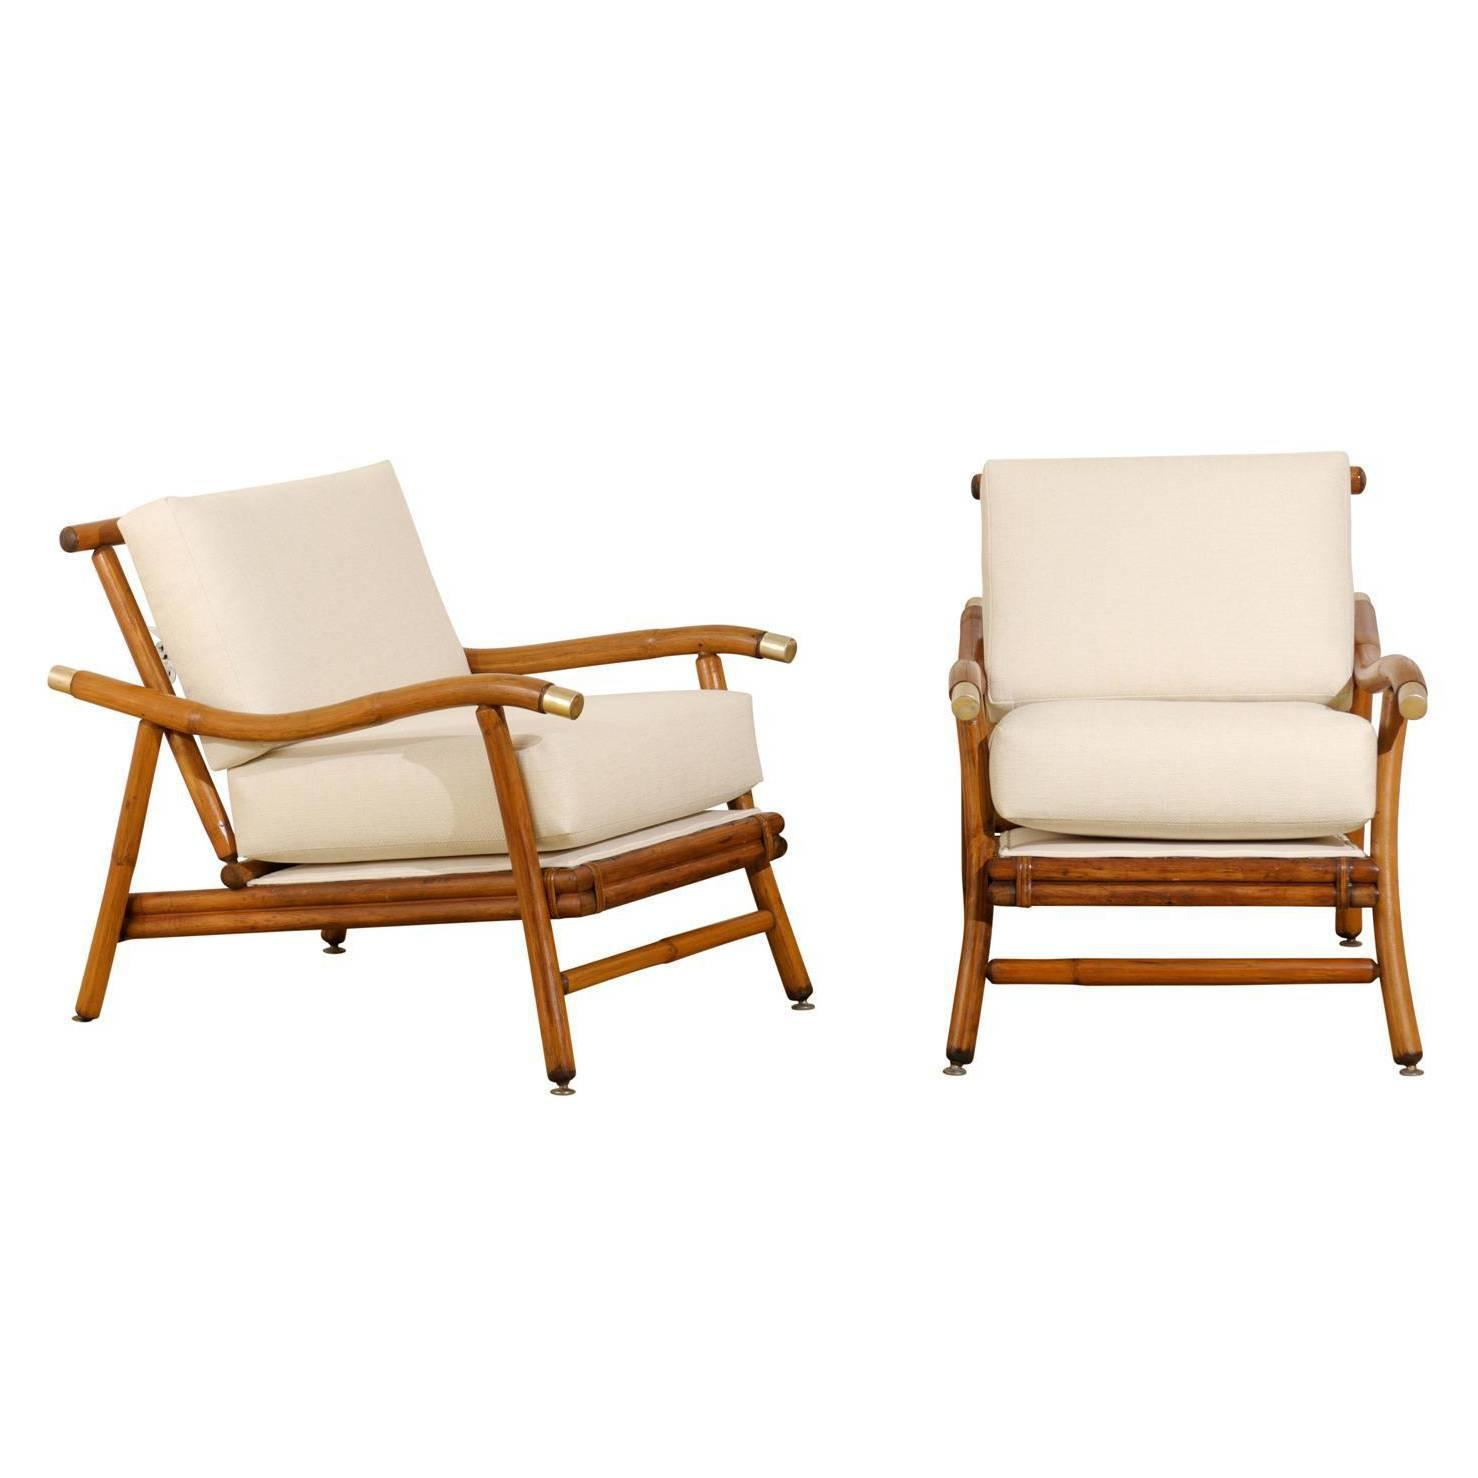 ficks reed chair pride mobility lift hand control remote restored pair of campaign lounge chairs by john wisner for